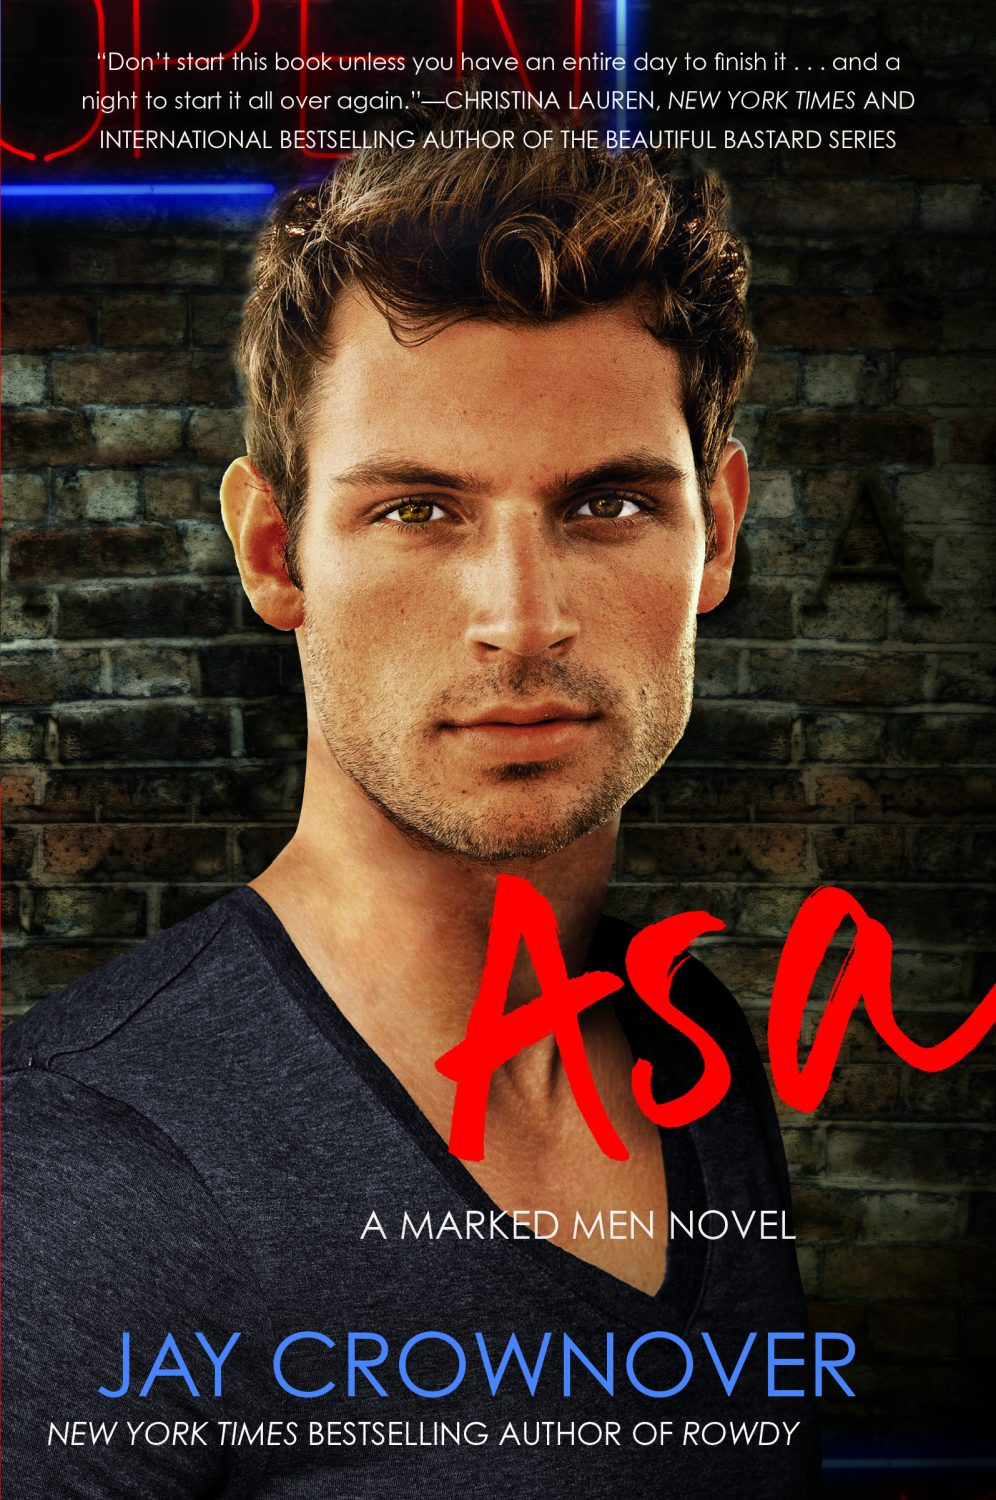 Blog Tour, Review, Excerpt & Giveaway: Asa (Marked Men #6) by Jay Crownover